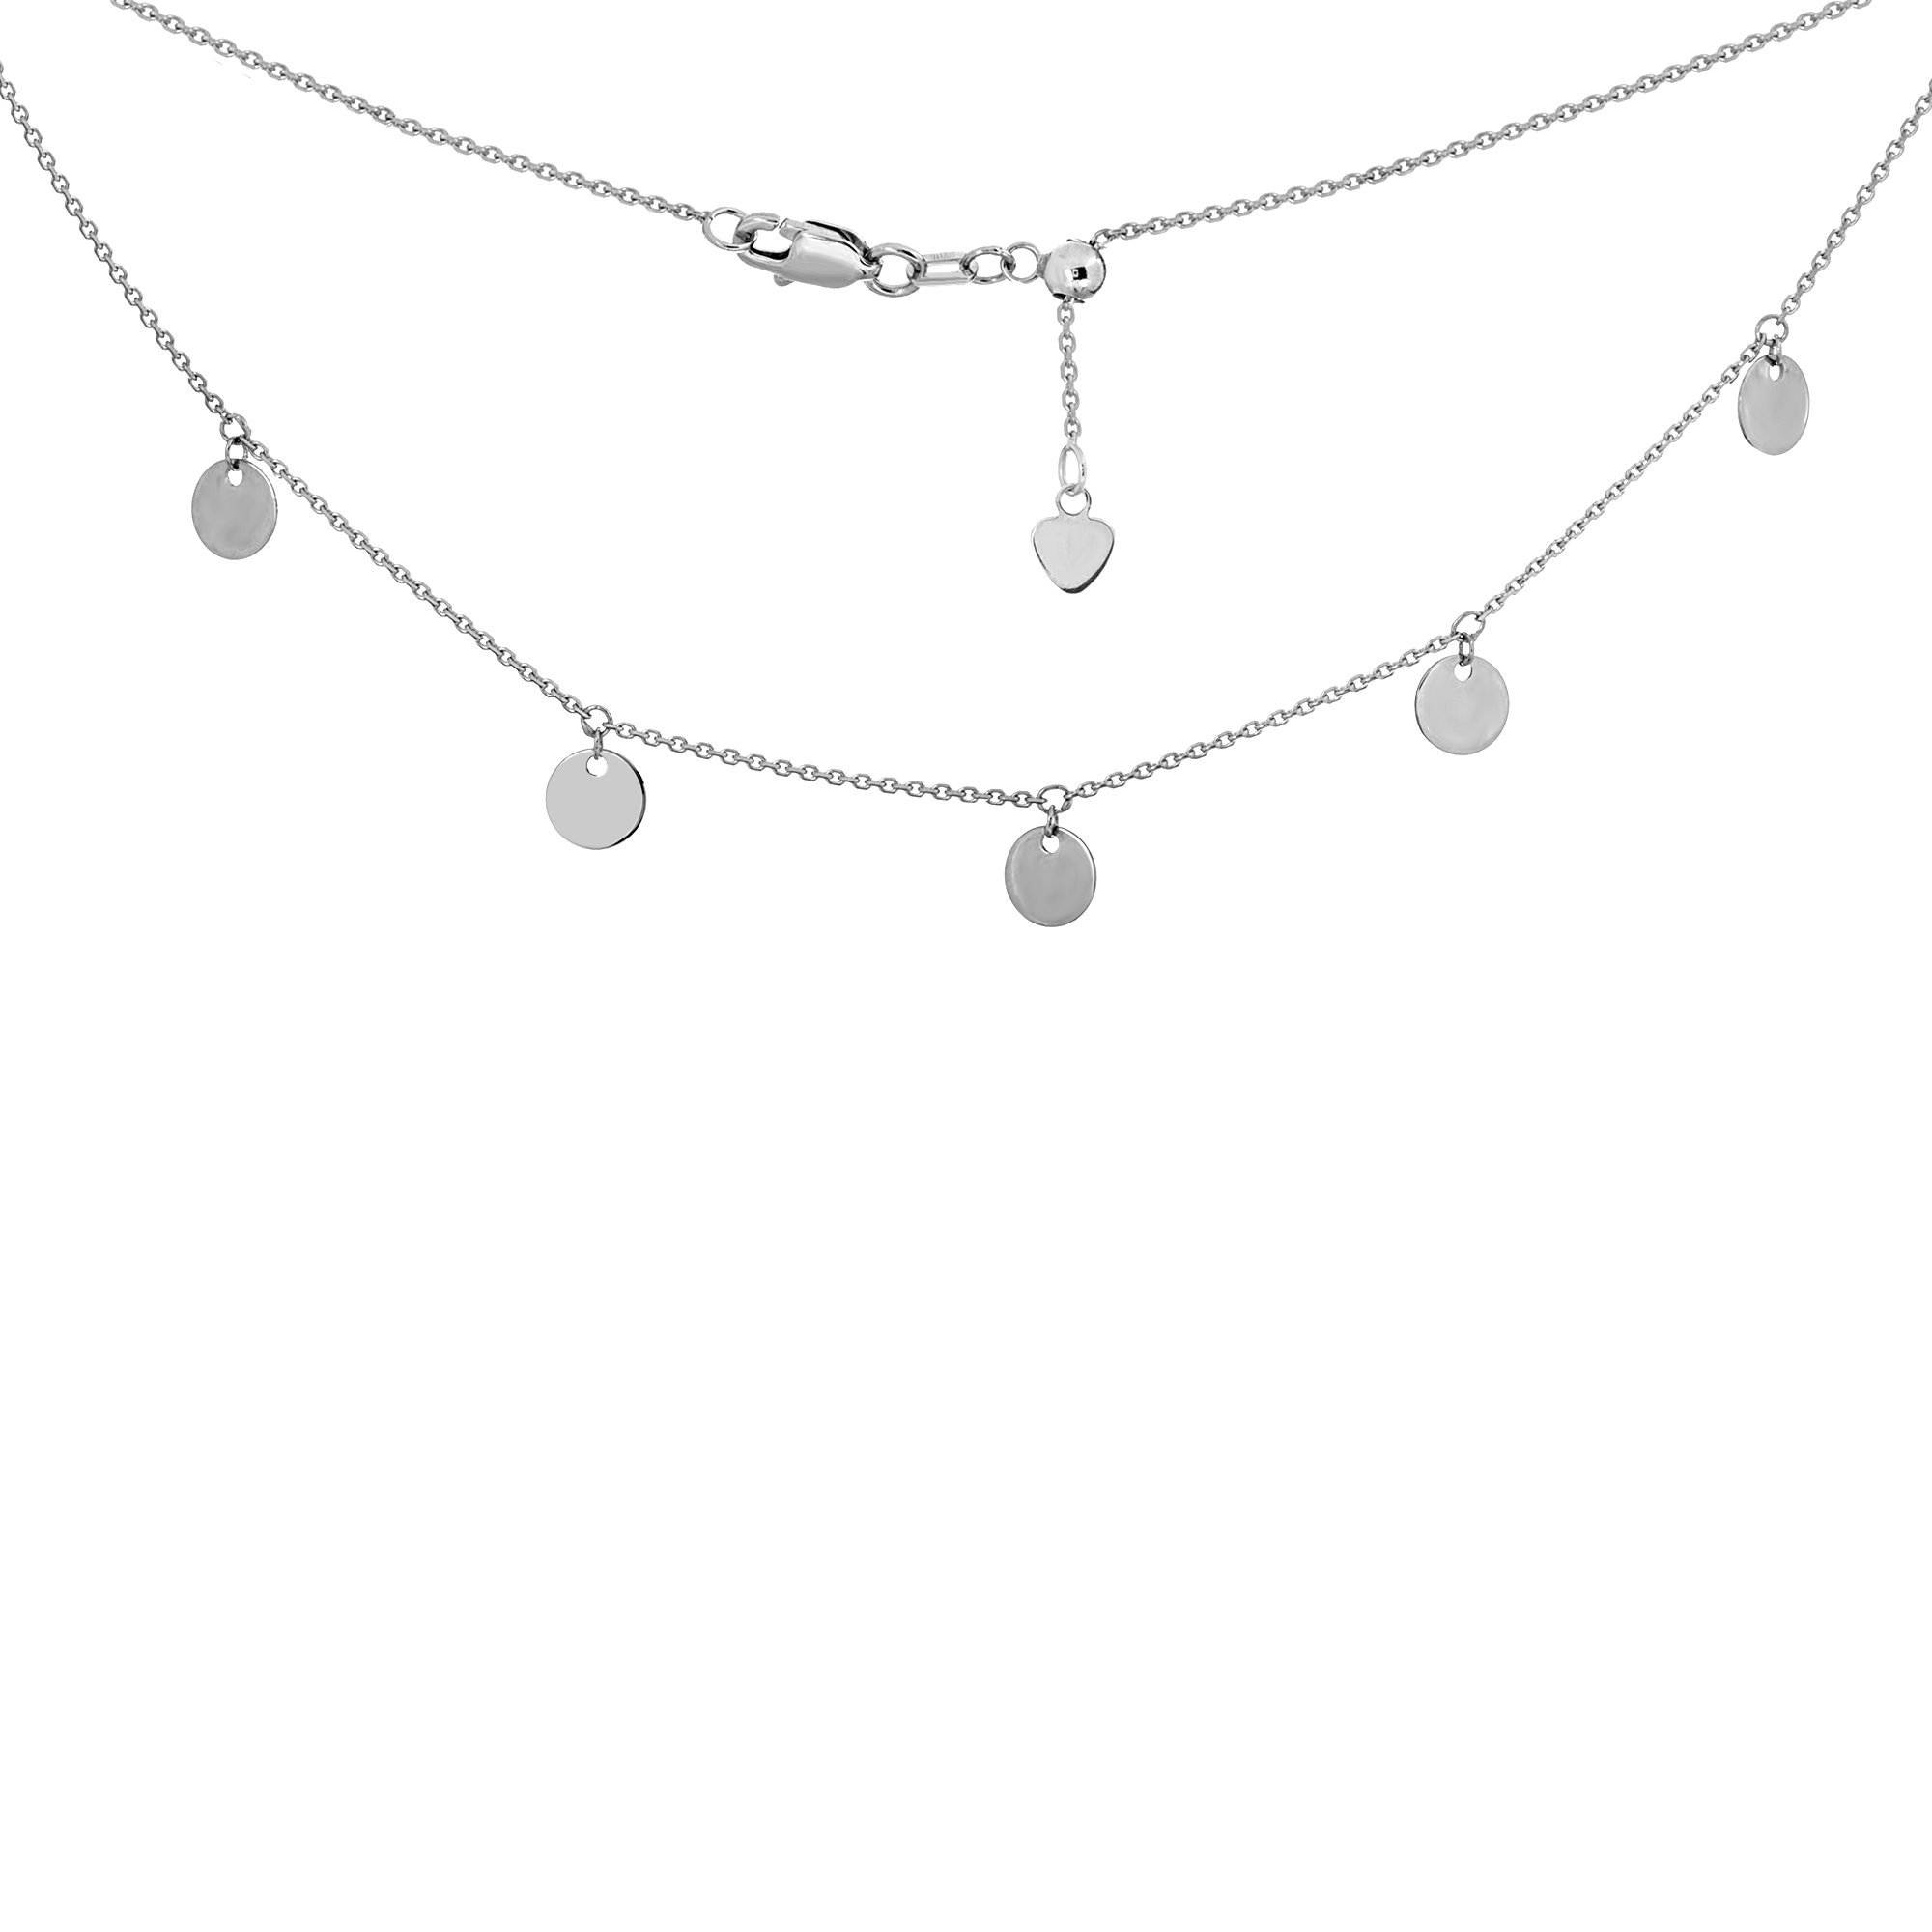 Choker Necklace with Dangle Disk Charms Chain 14k White Gold - Adjustable